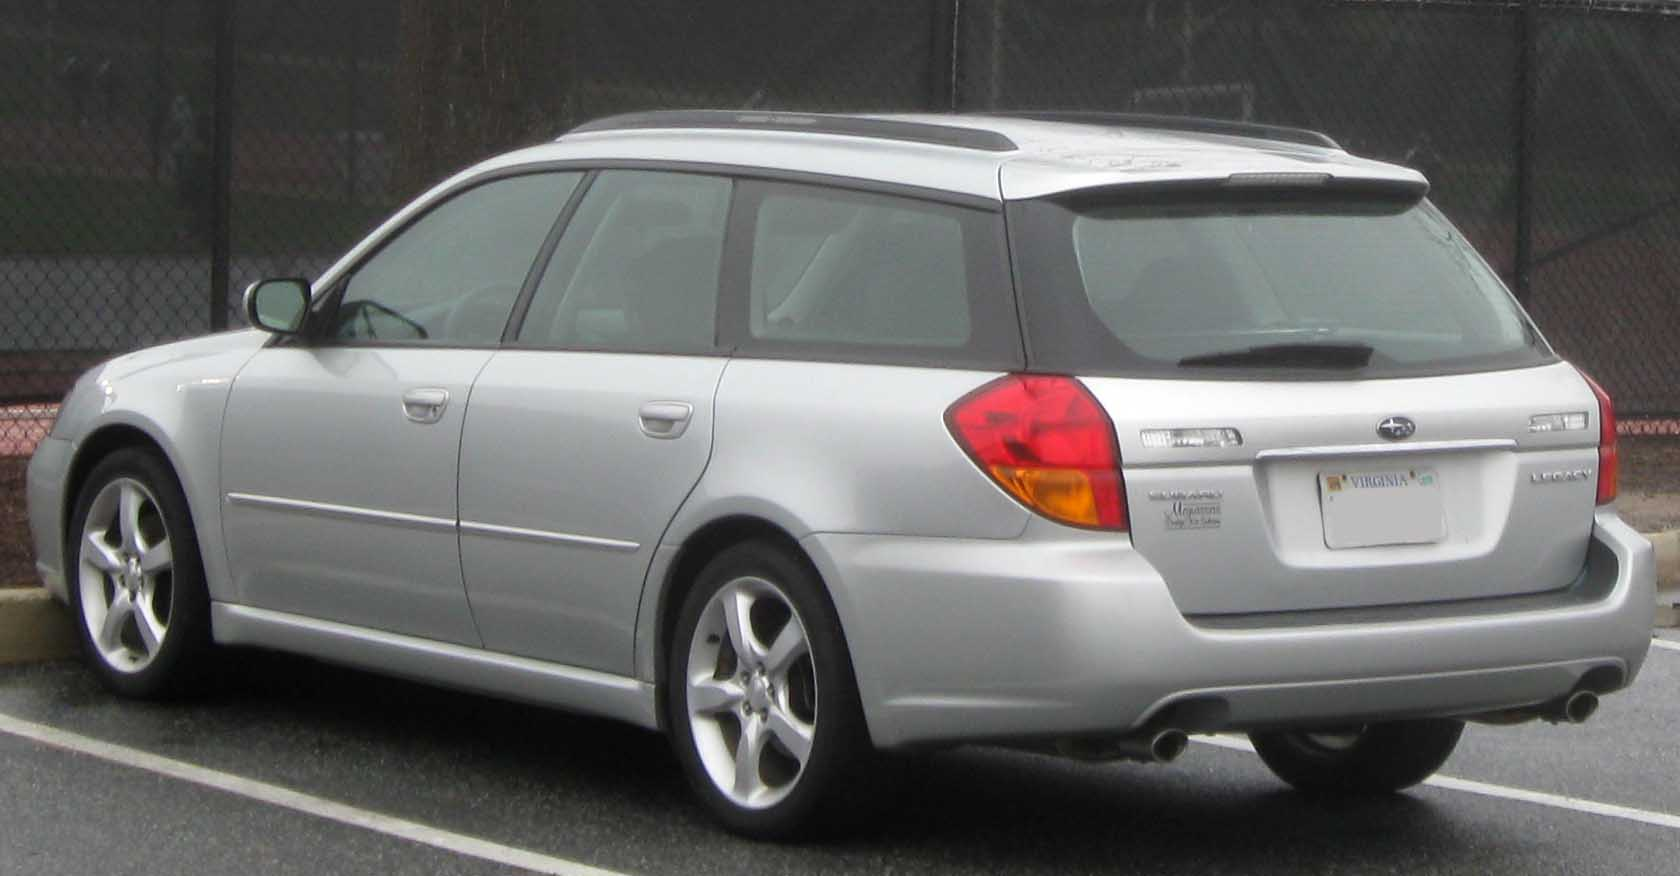 File:05-07 Subaru Legacy wagon.jpg - Wikimedia Commons